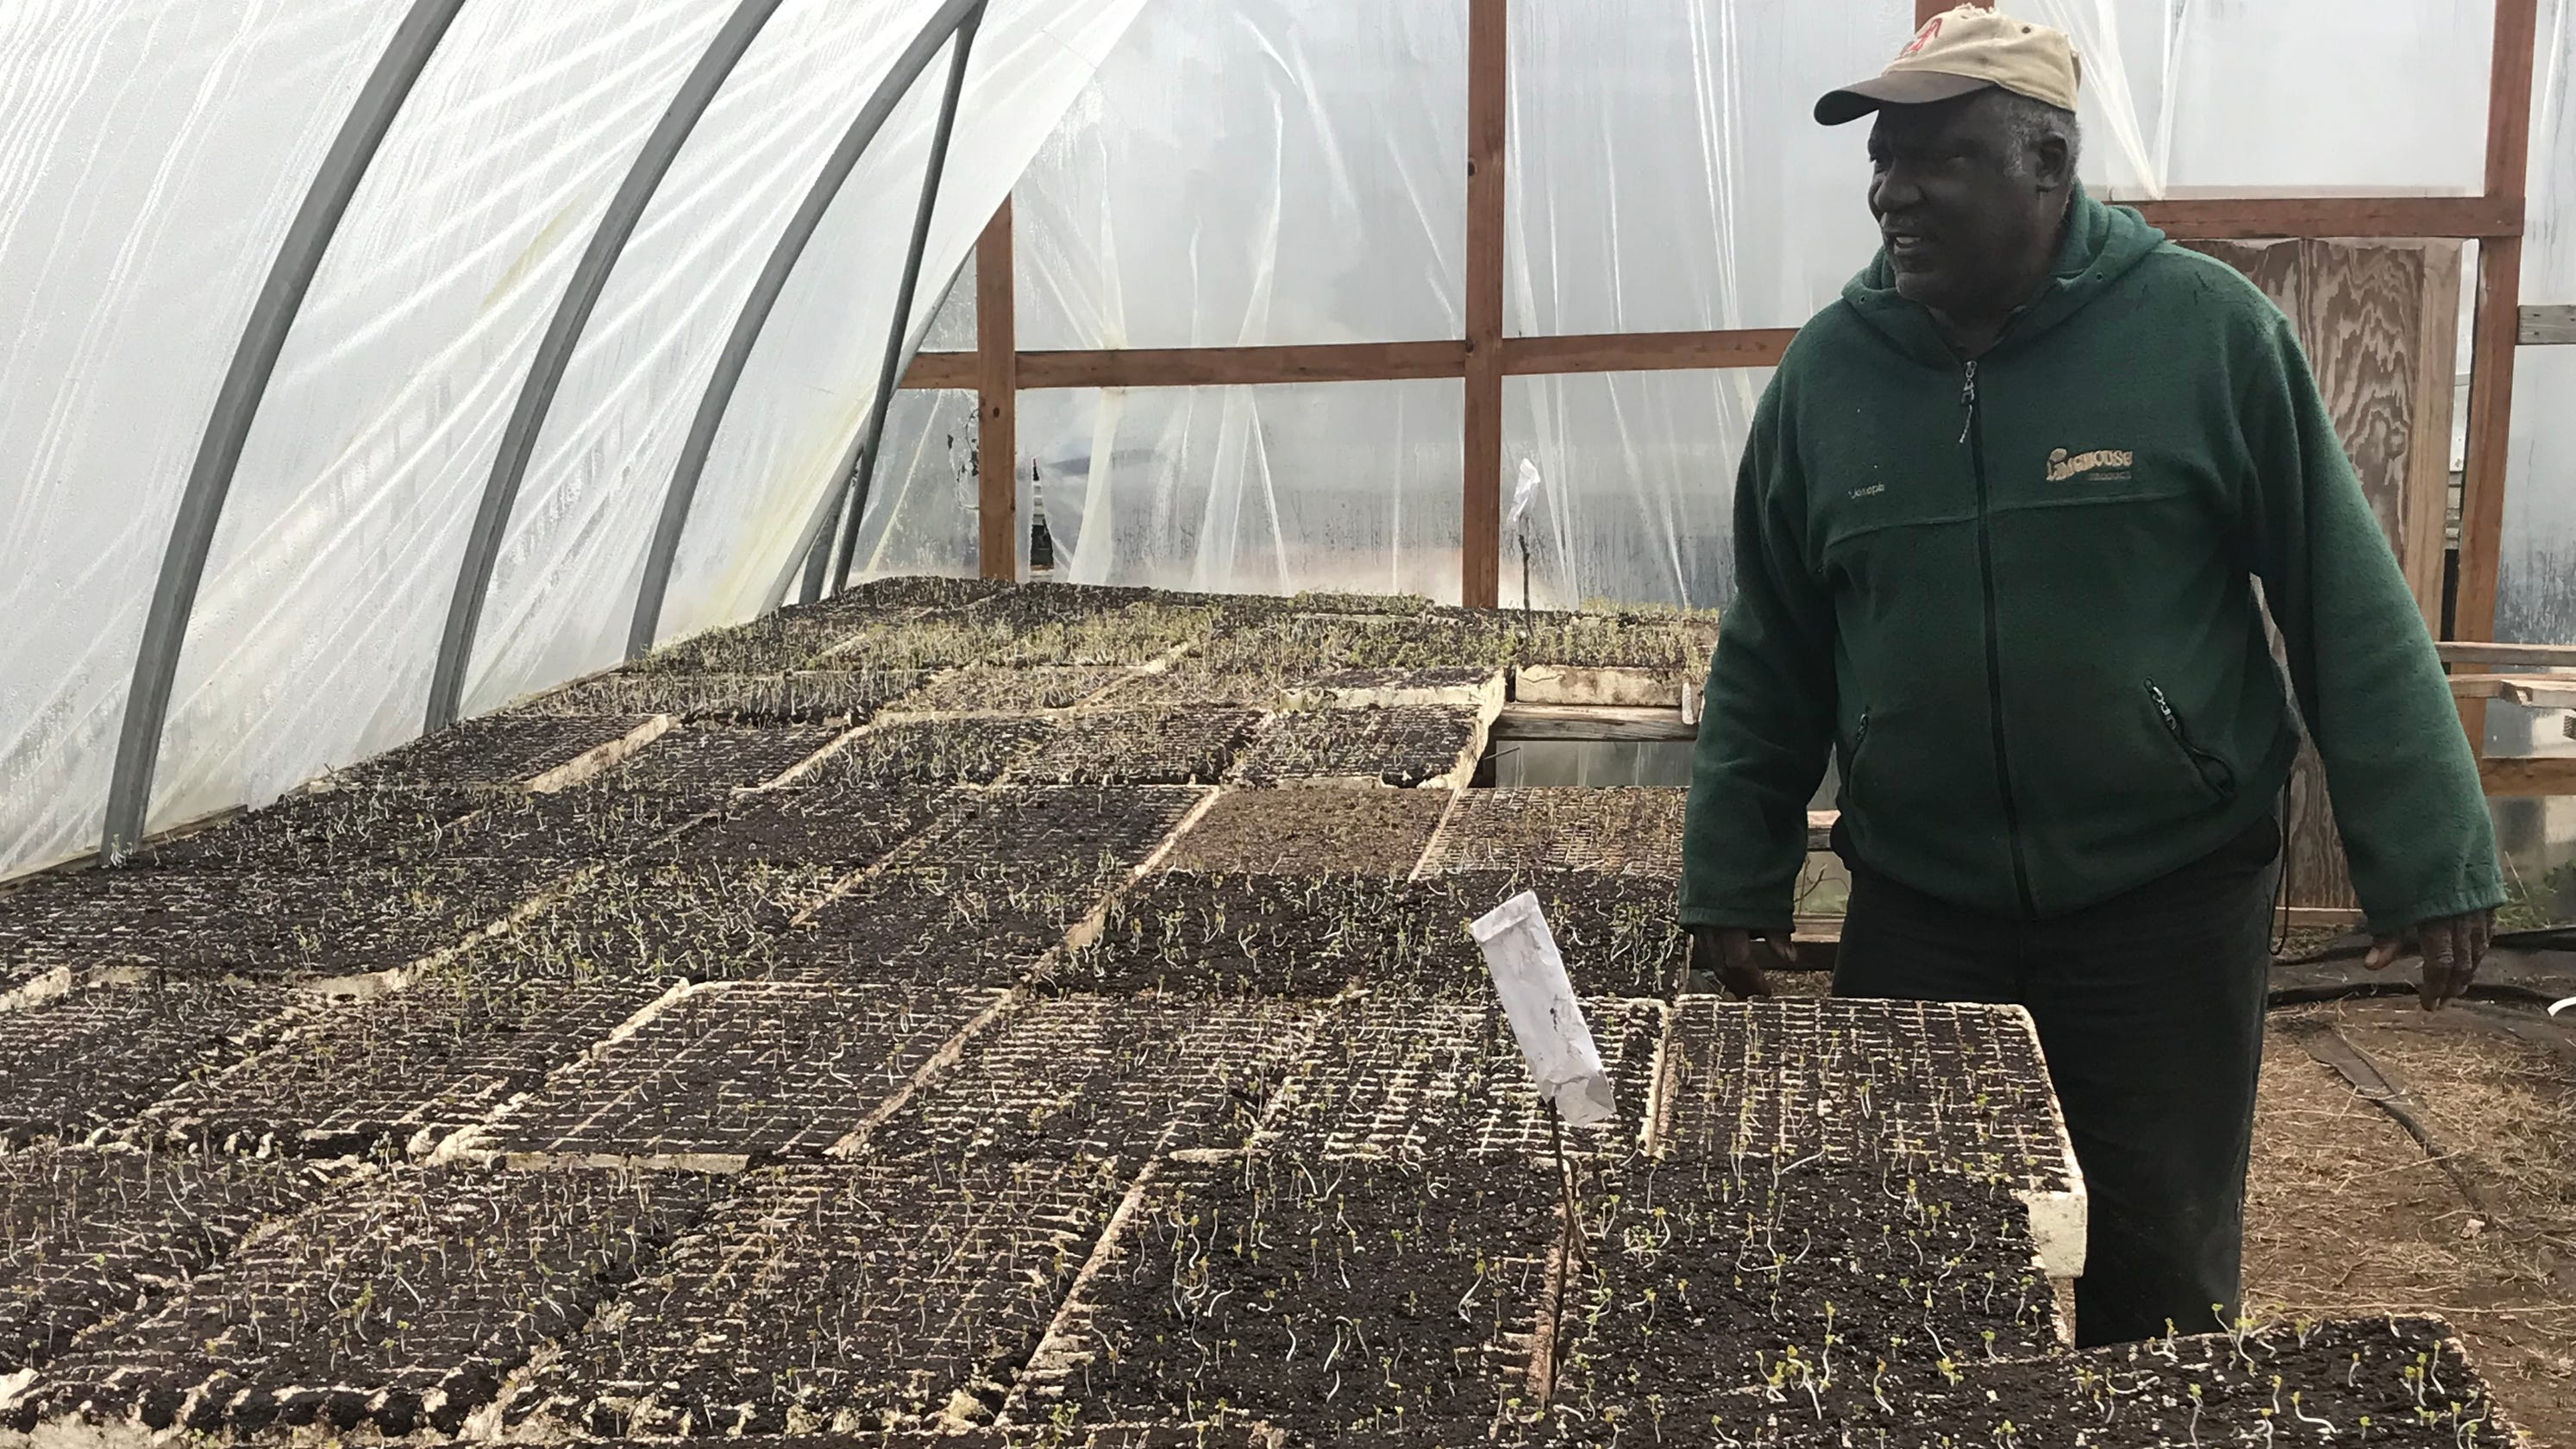 Gullah people face new challenges in the most African place